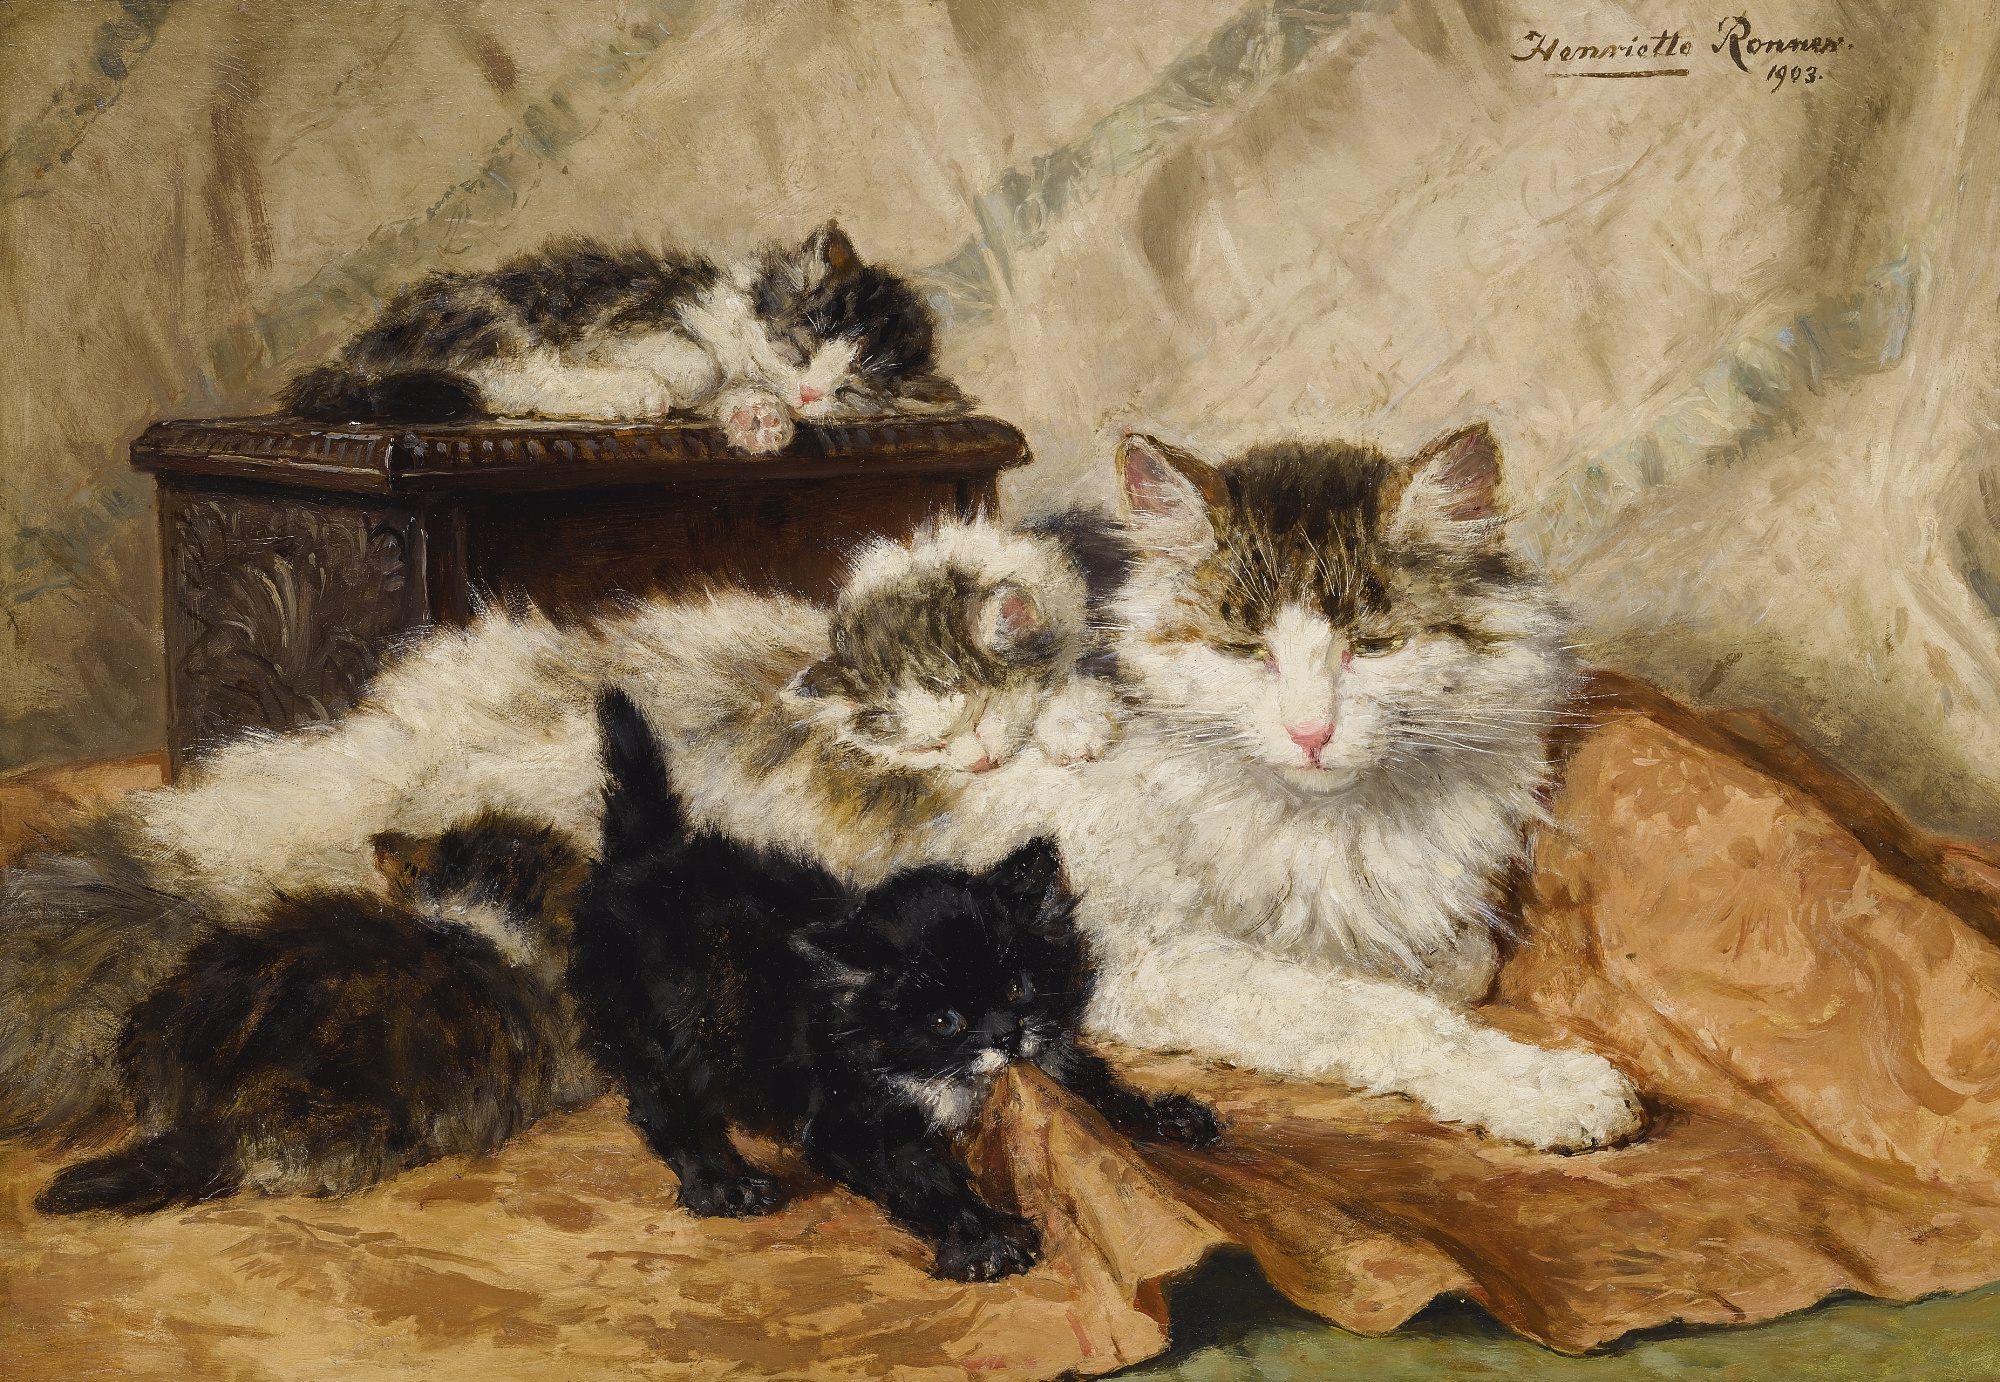 Henriette Ronner-Knip | A MOTHER AND HER KITTENS